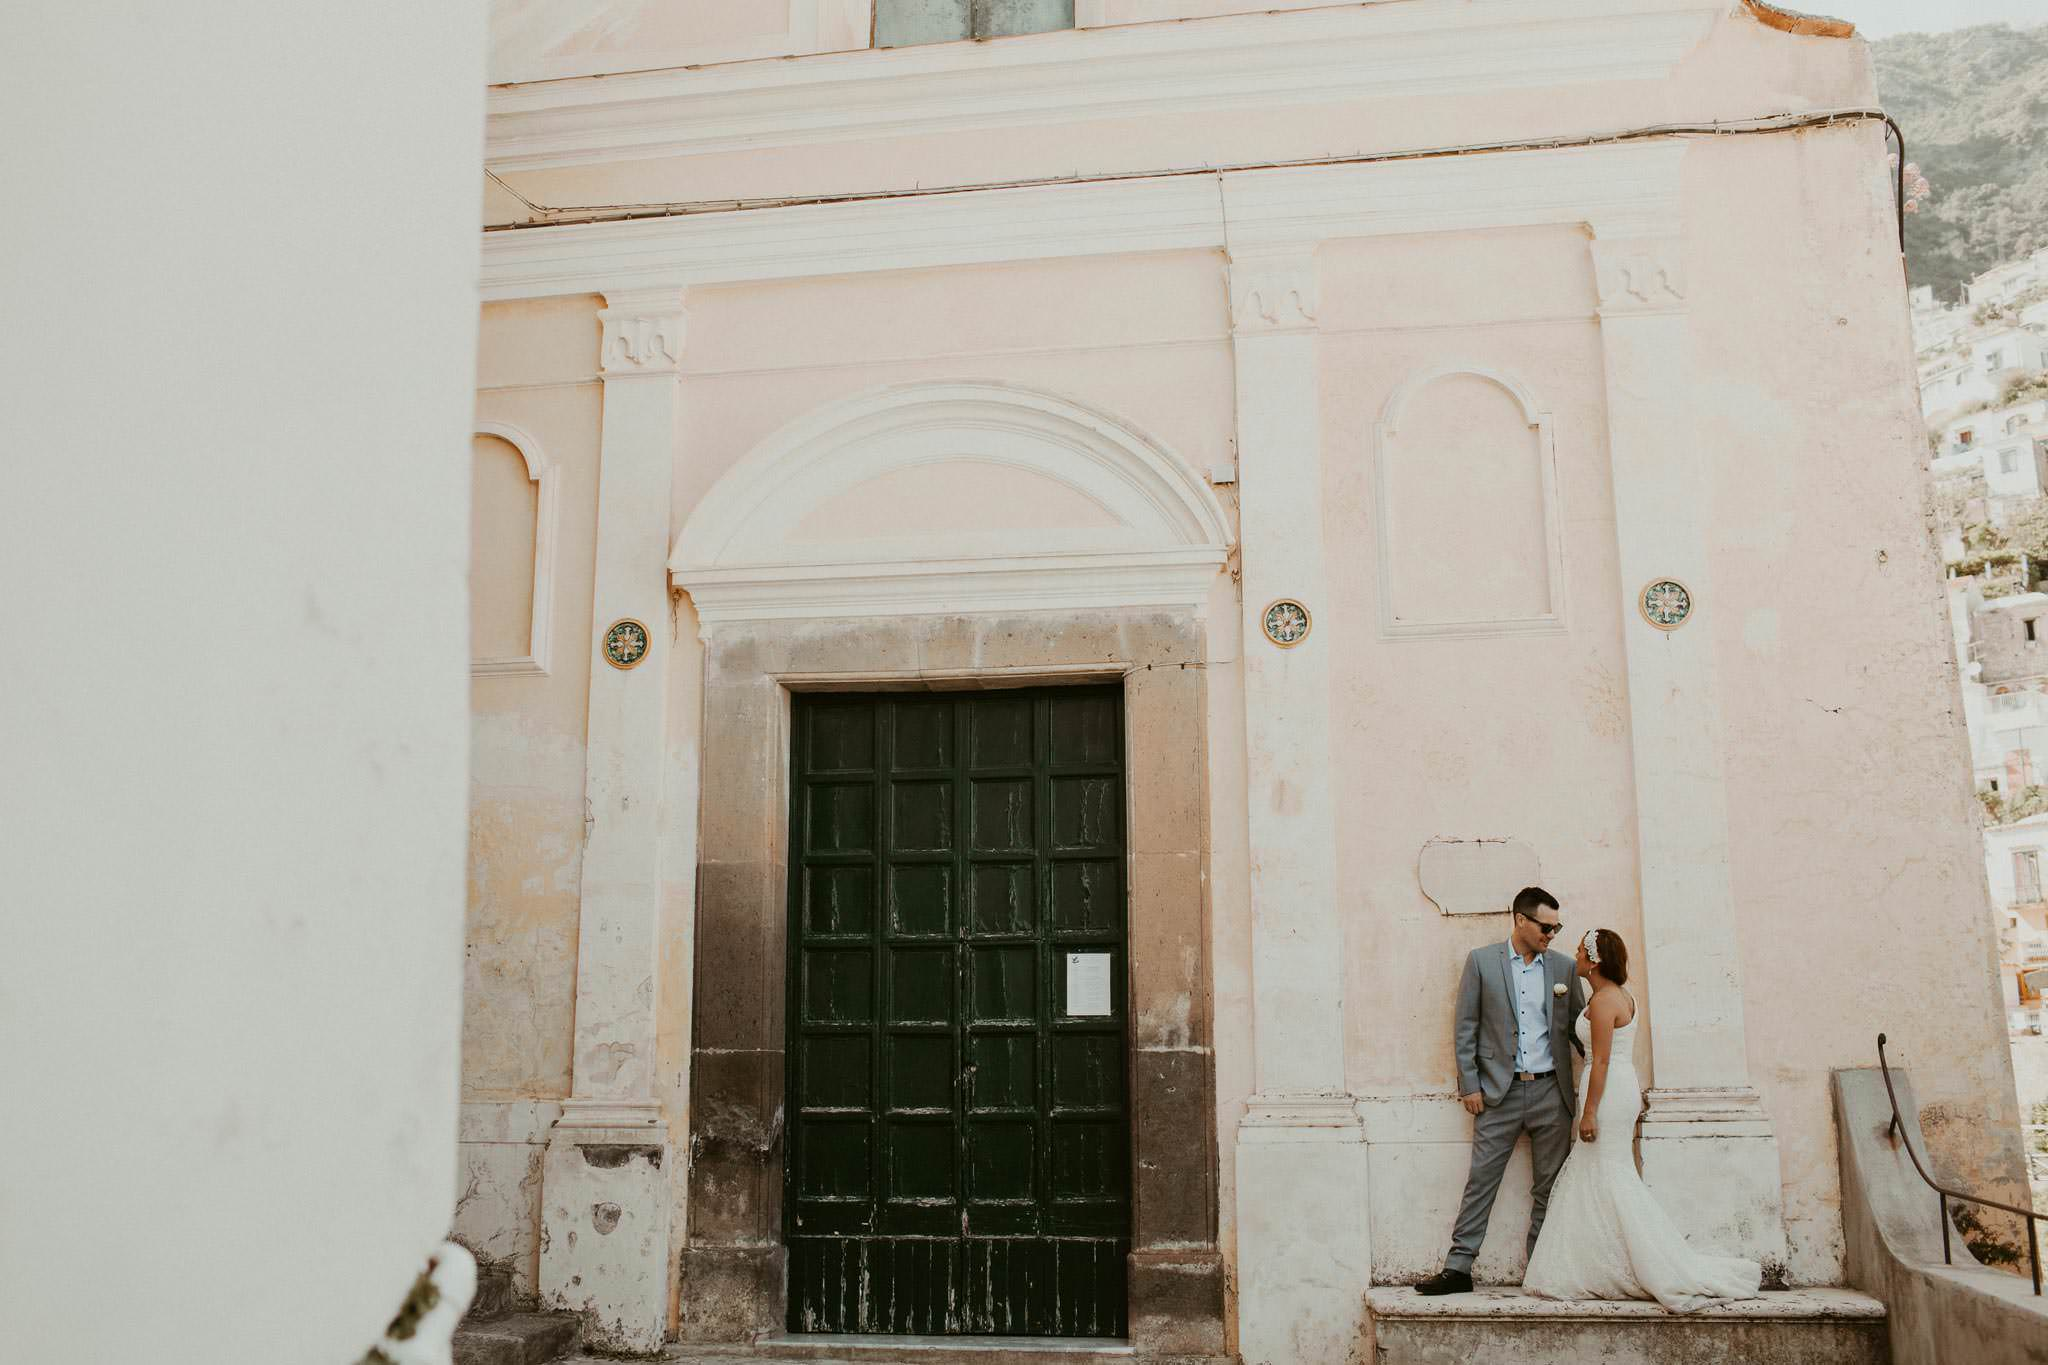 positano-wedding-photographer-076